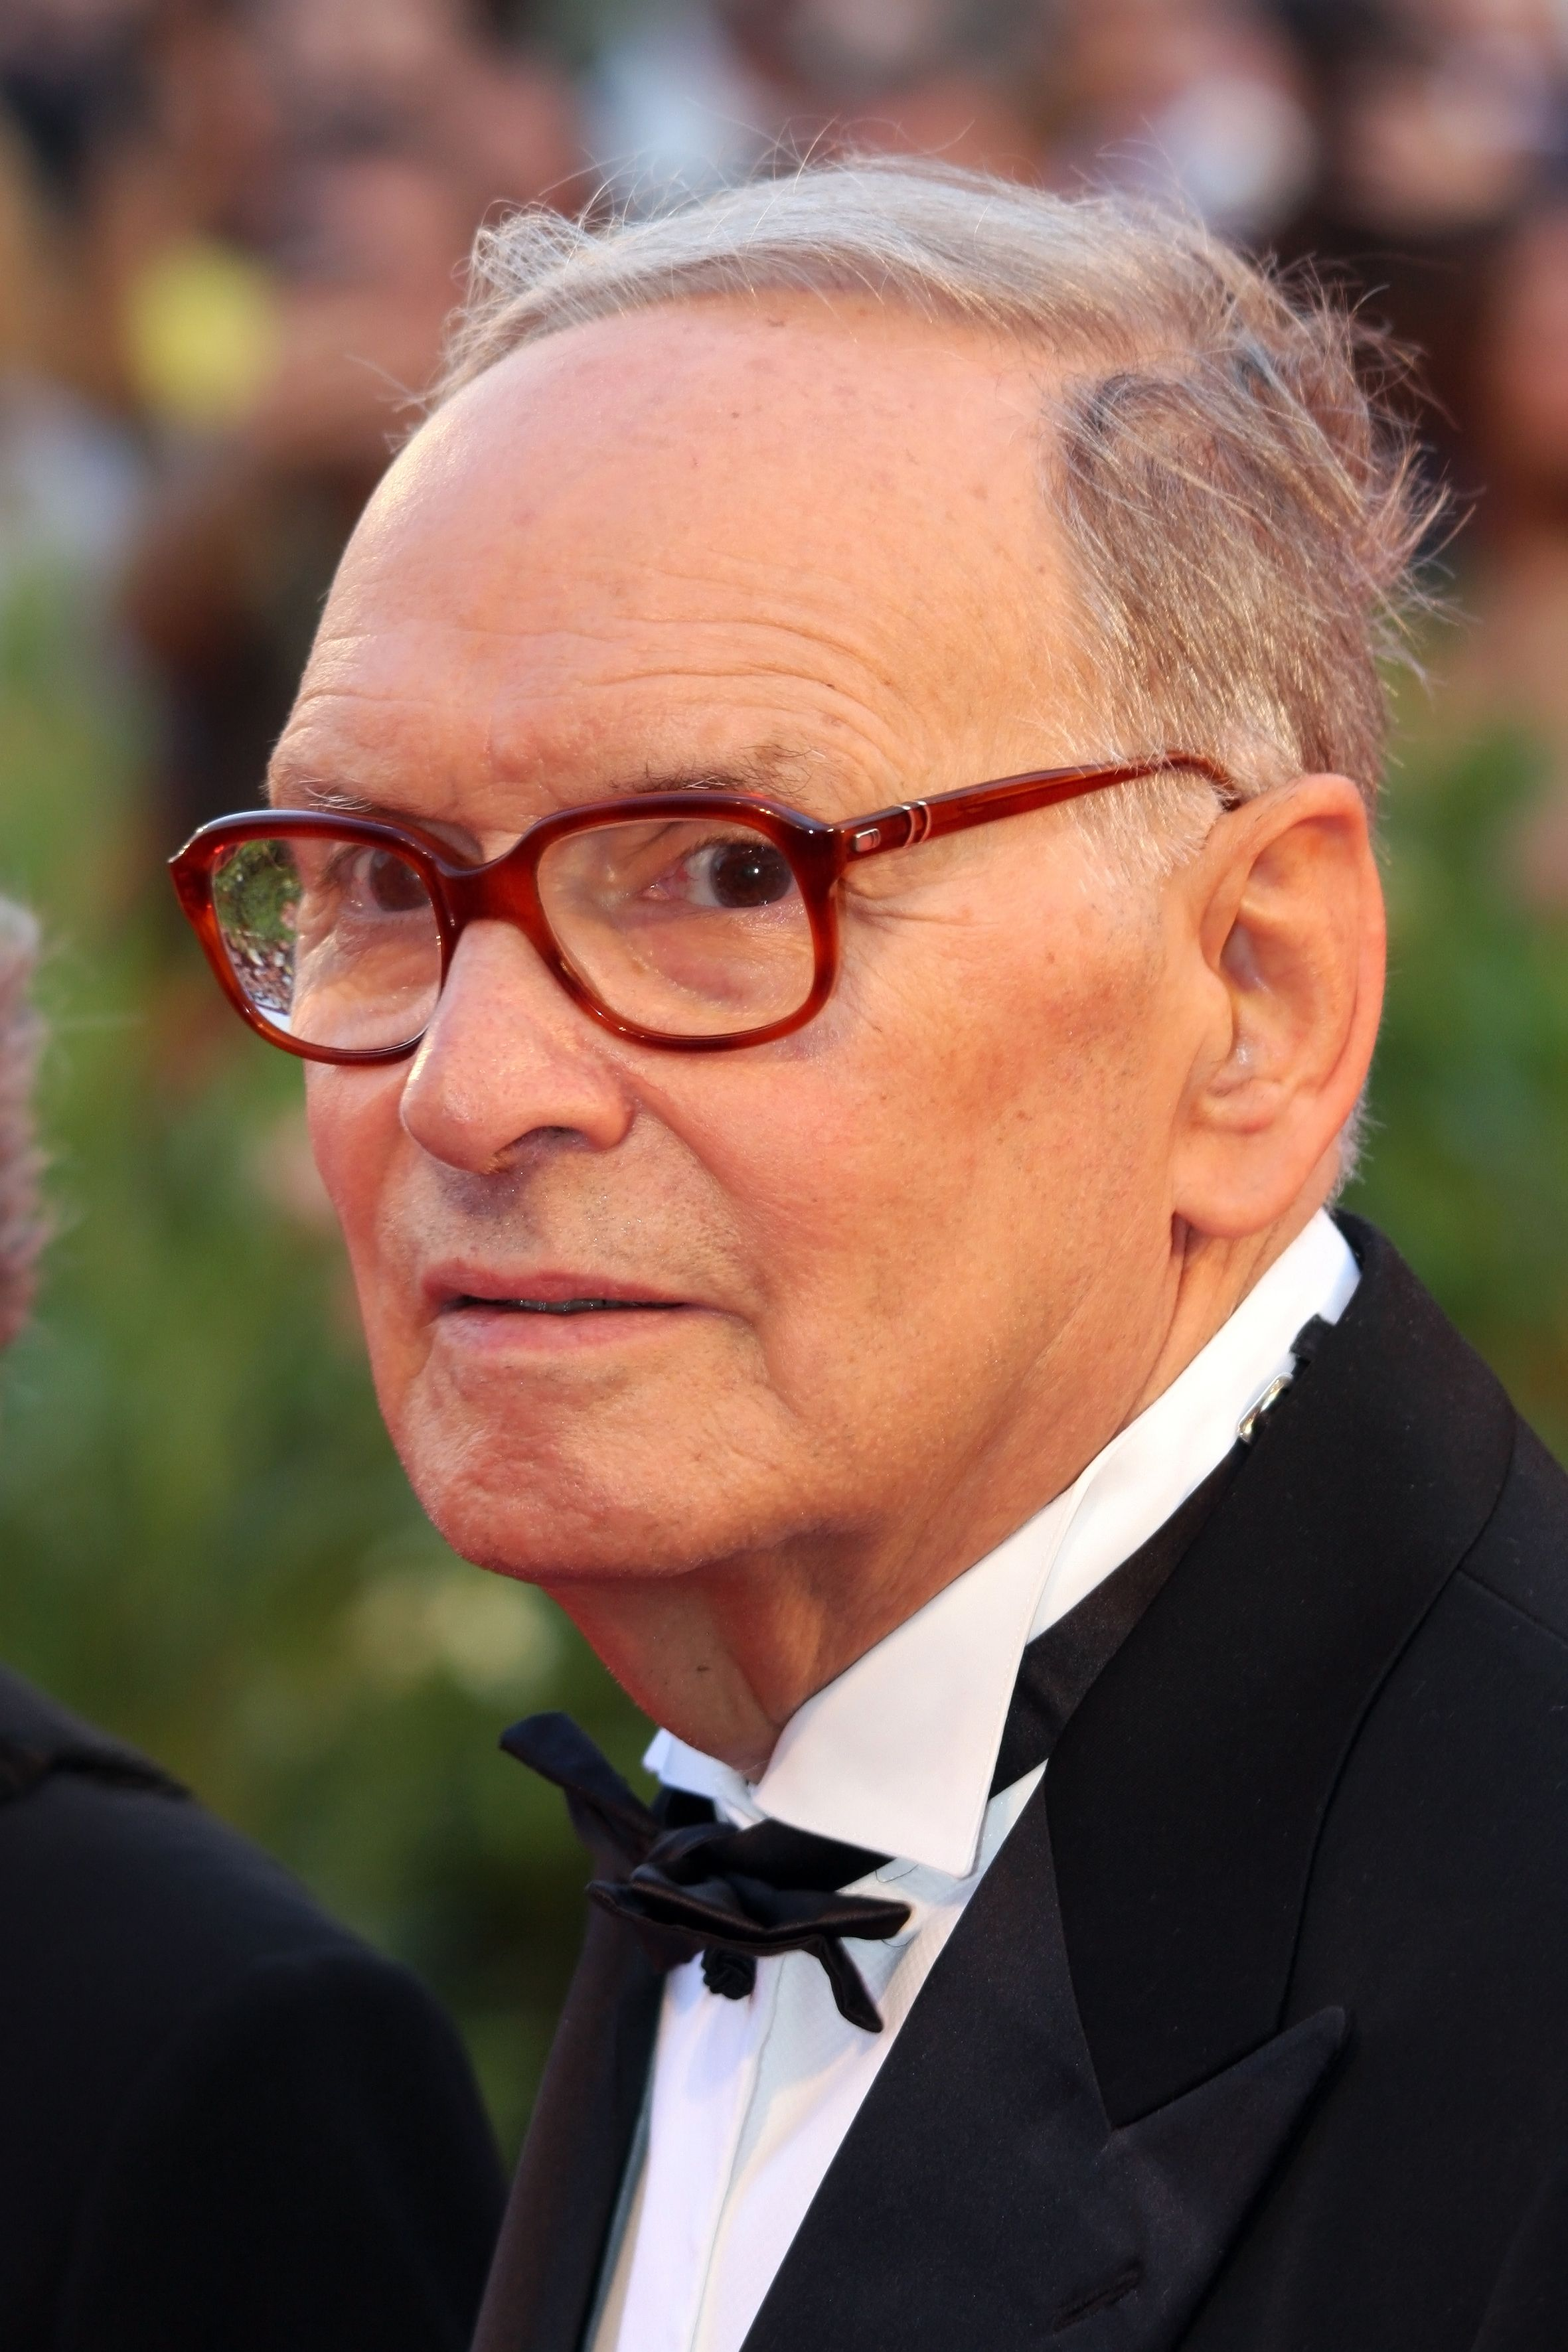 Ennio Morricone attends the 'Baaria' premiere during the 66th Venice Film Festival on September 2, 2009 in Venice, Italy. (ChinellatoPhoto / Shutterstock.com)